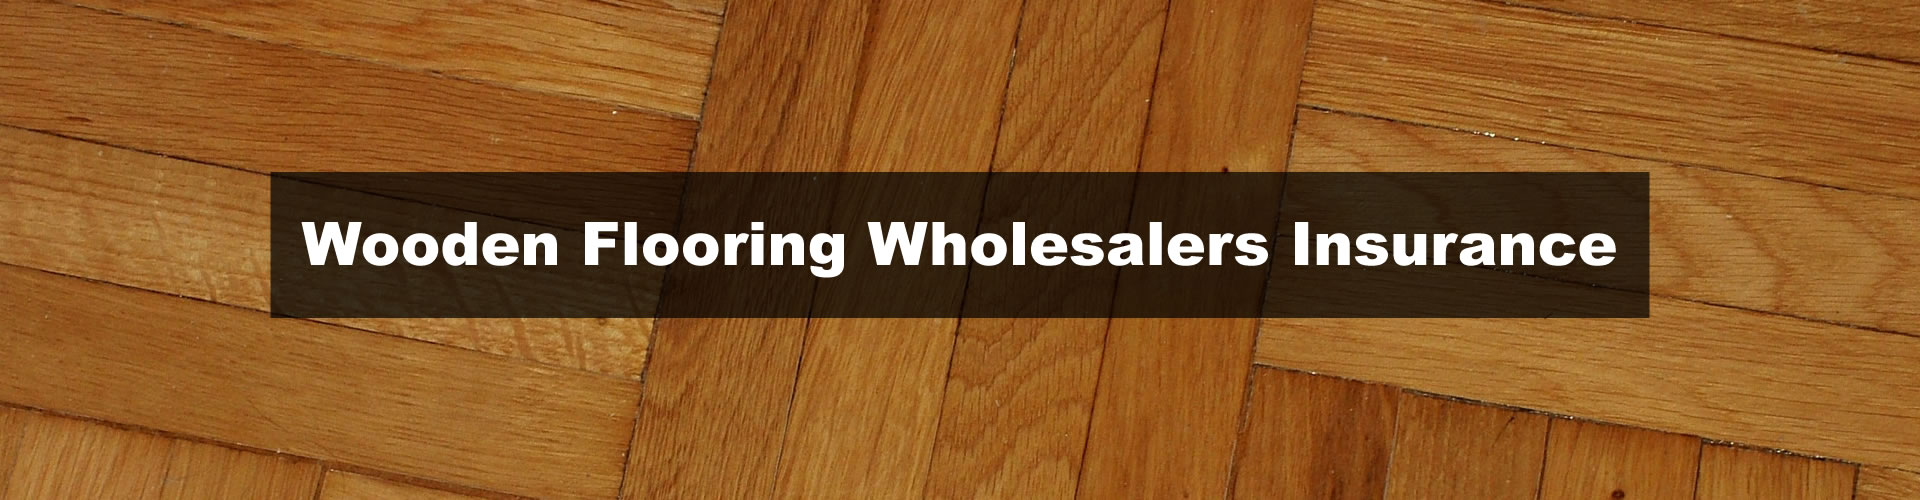 wooden-flooring-wholesalers-insurance